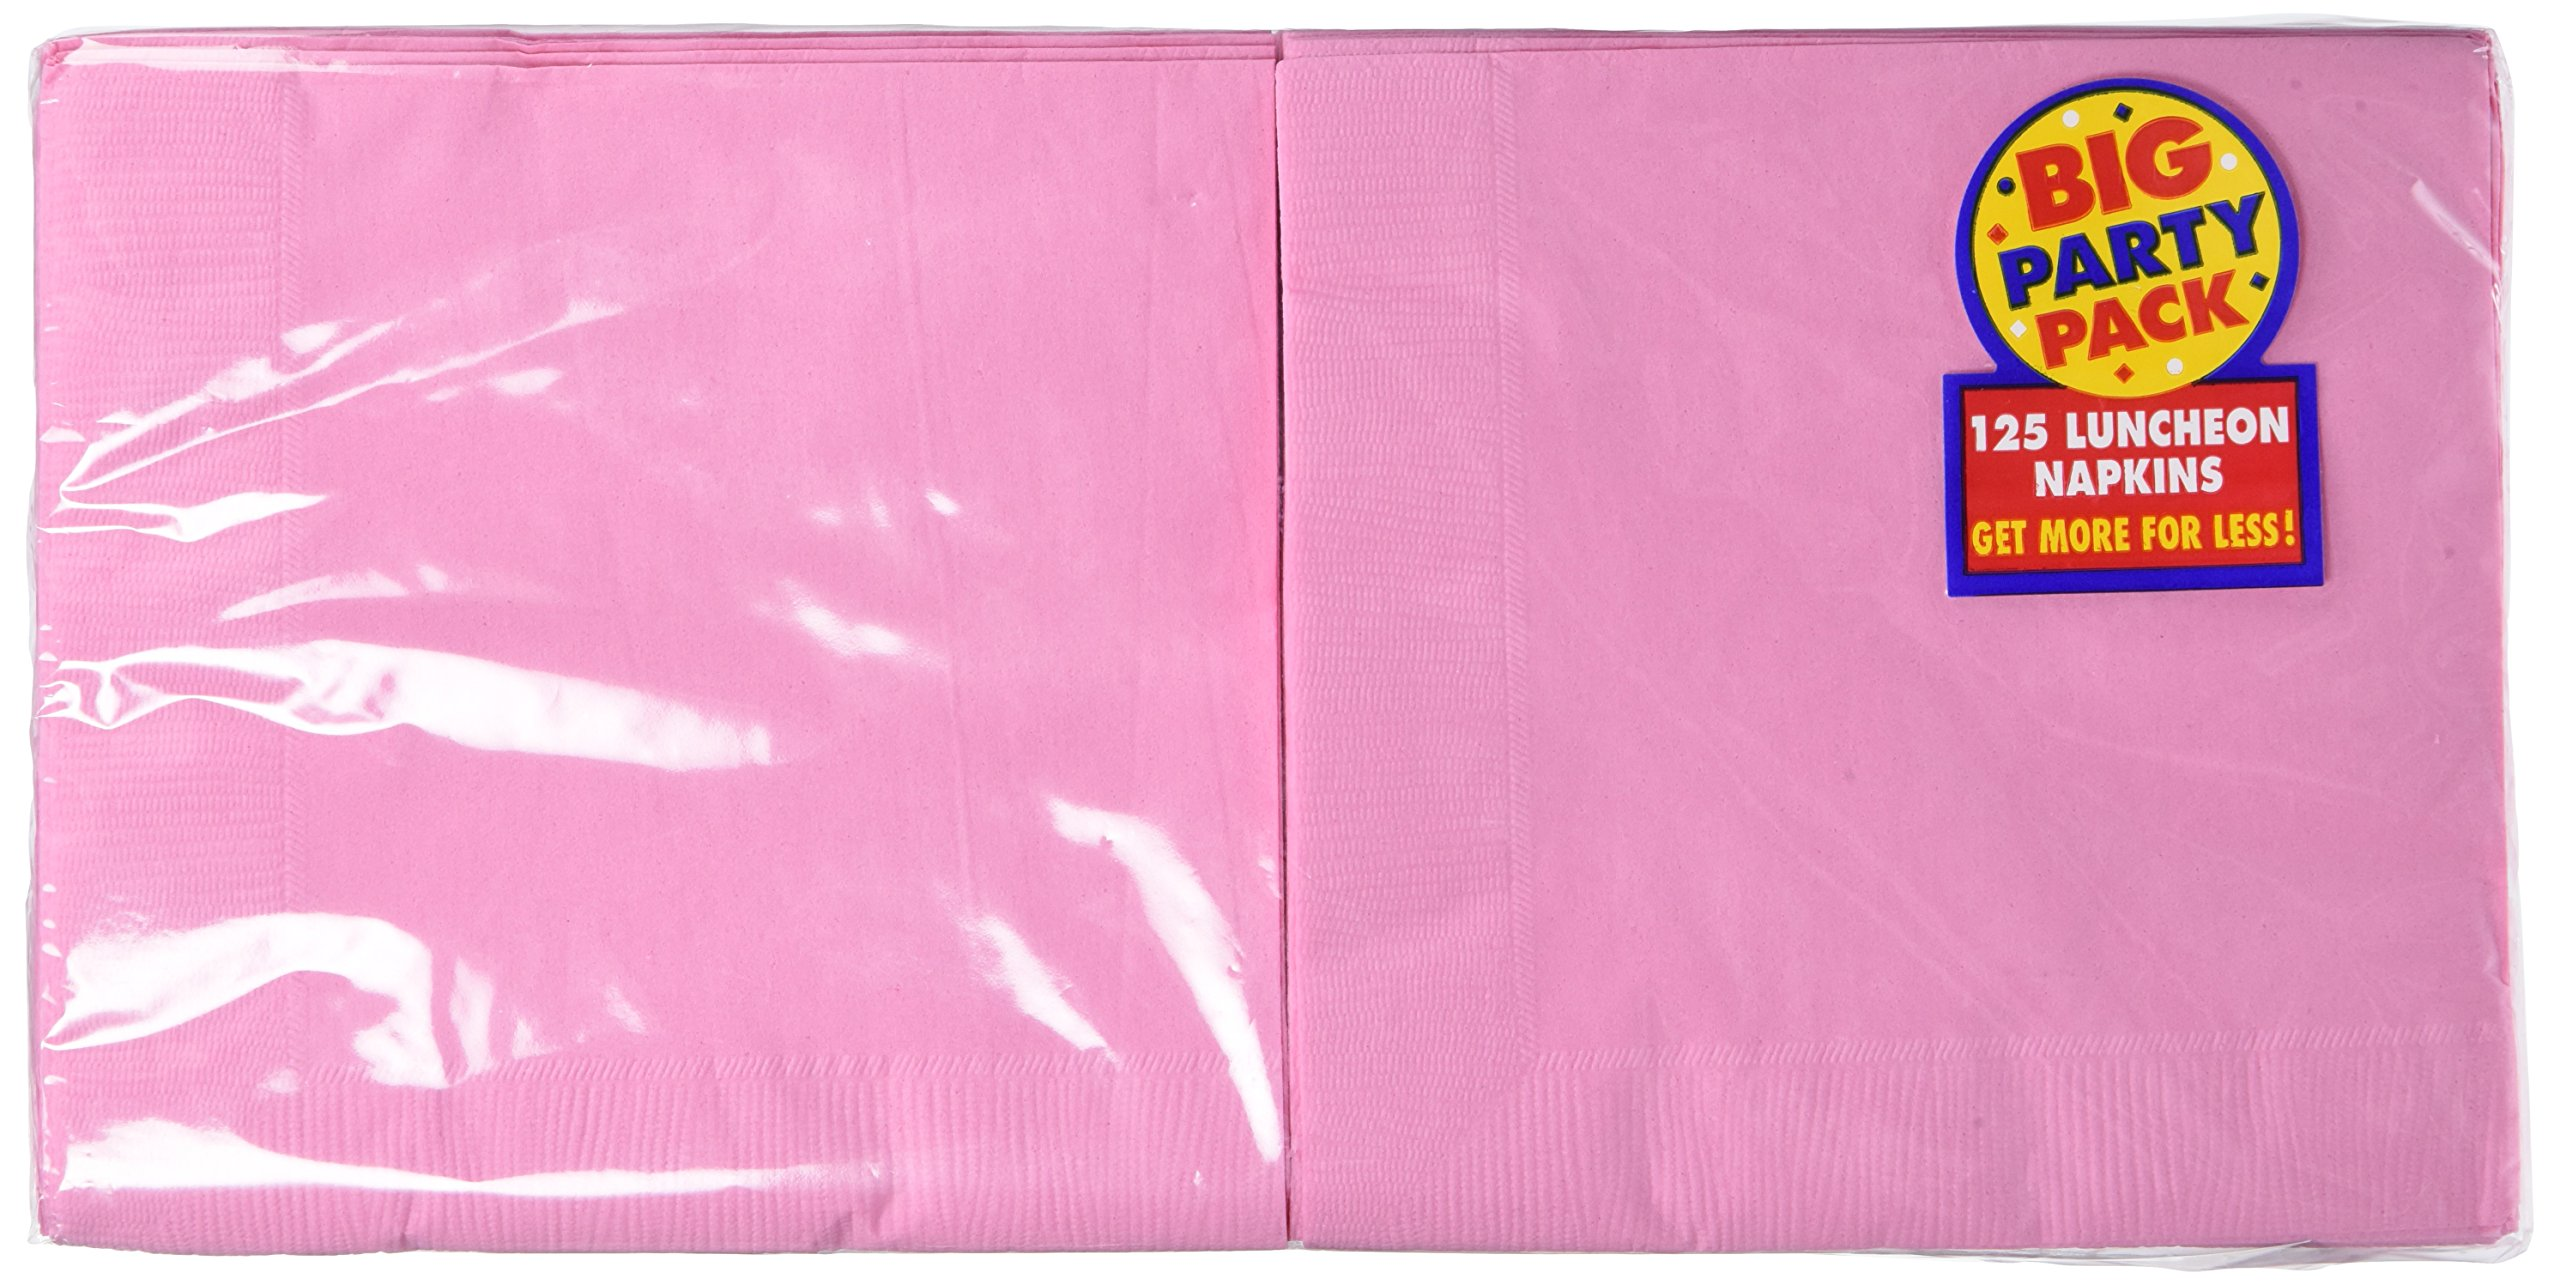 Amscan Big Party Pack 125 Count Luncheon Napkins New Pink 4